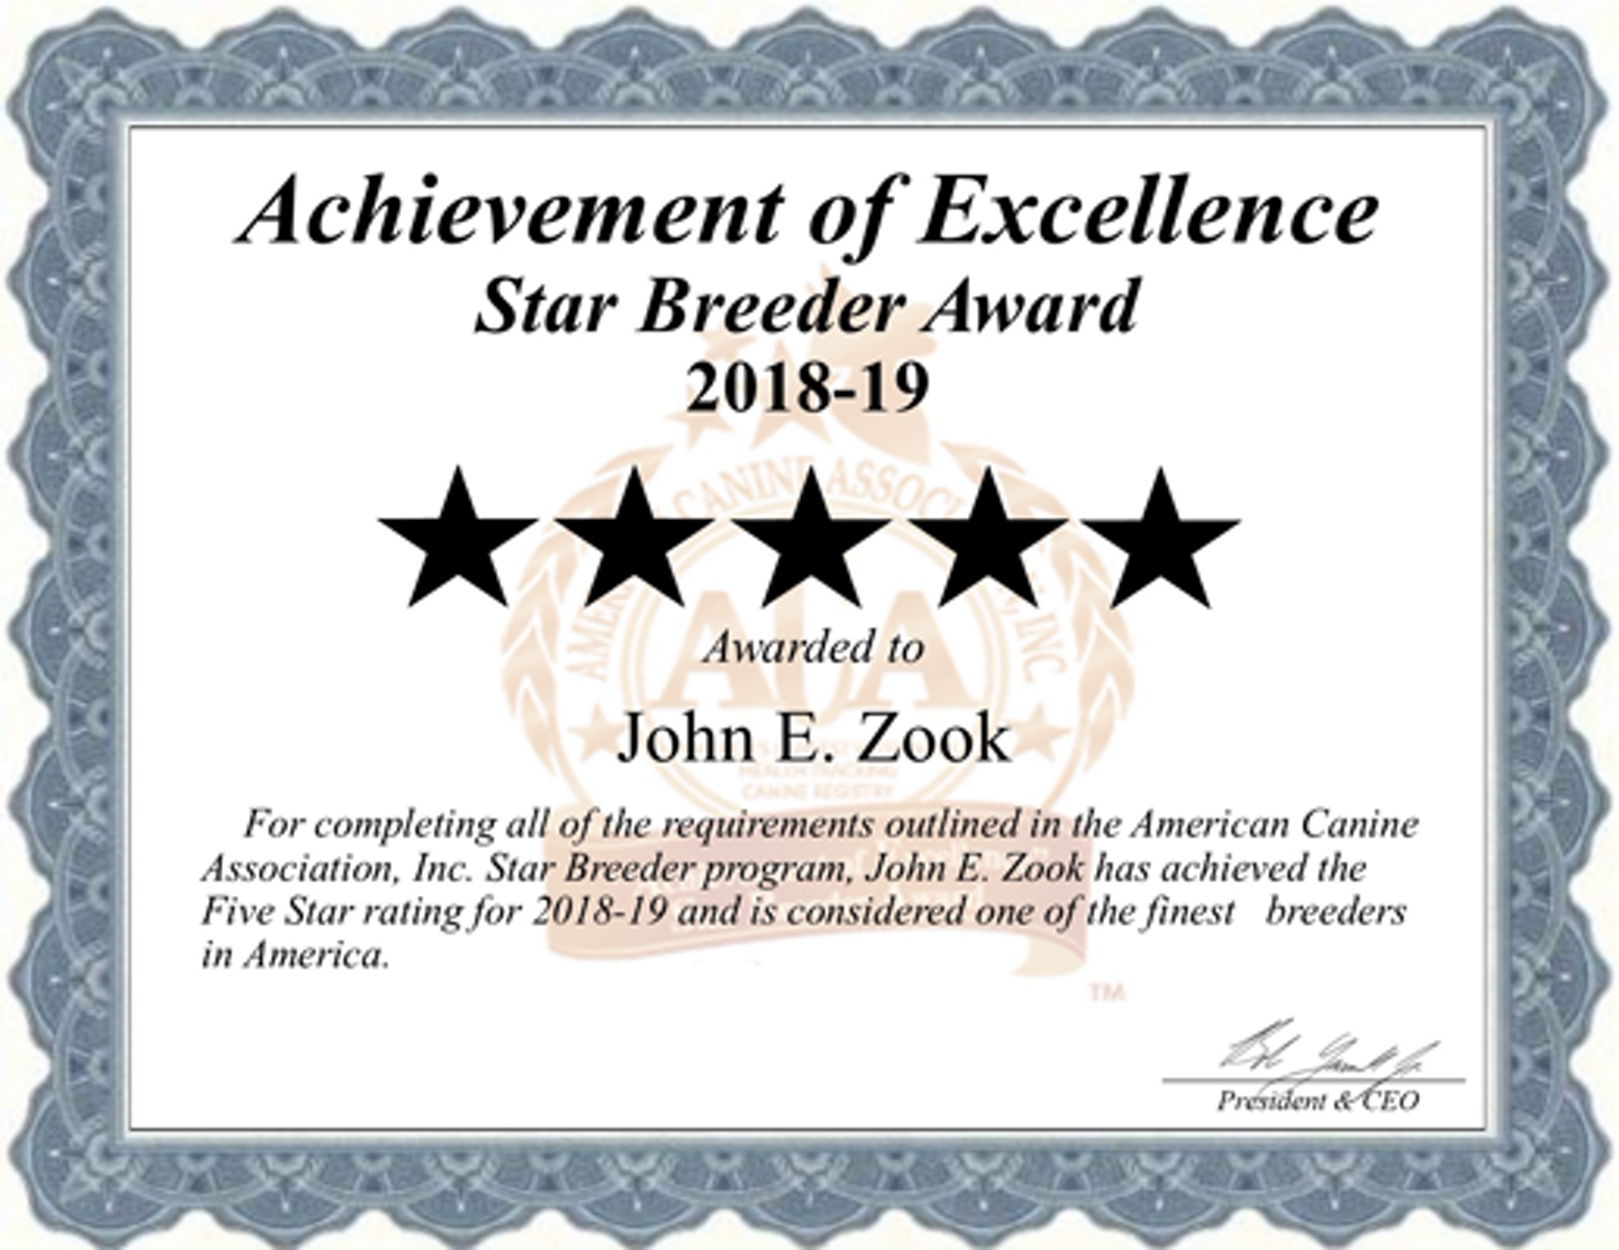 John E. Zook breeder, John E. Zook, John E. Zook Kennel, Esther, W, Zook, Star, Breeder Award, breeder, star breeder, aca, star breeder, 5 star, Stevens, Pennsylvania, PA, dog, puppy, puppies, dog breeder, dog breeders, Pennsylvania breeder, John E. Zook dog breeder